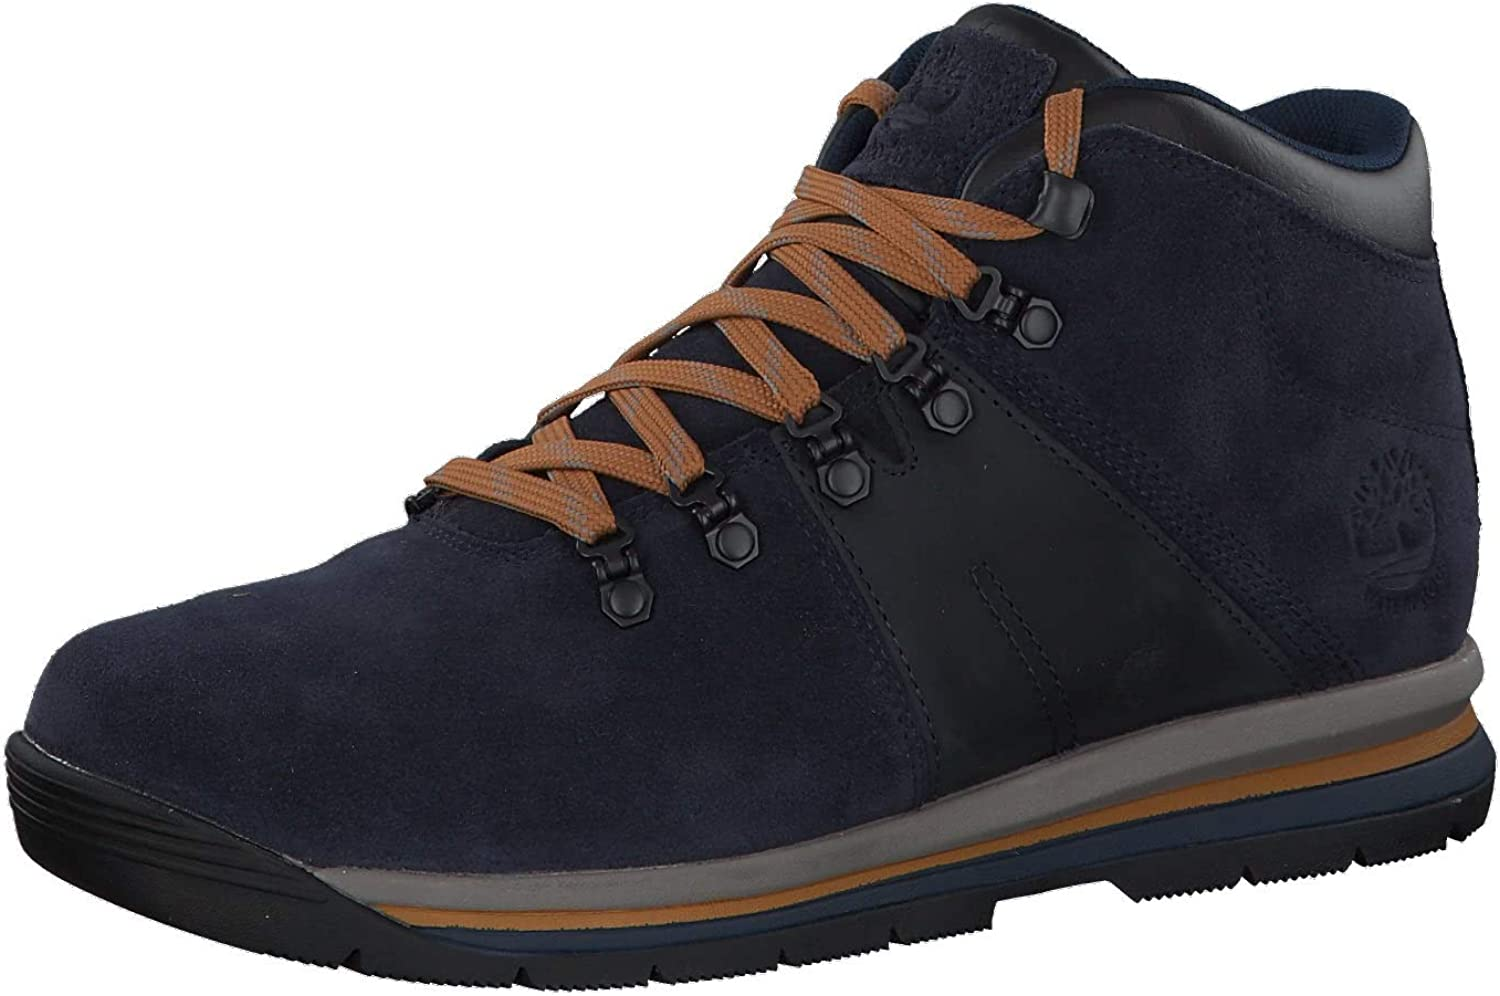 Timberland GT Rally Mid Leather WP WP WP Shoes Men Navy Suede 2018 Schuhe B07HQ3KR5R  32d781